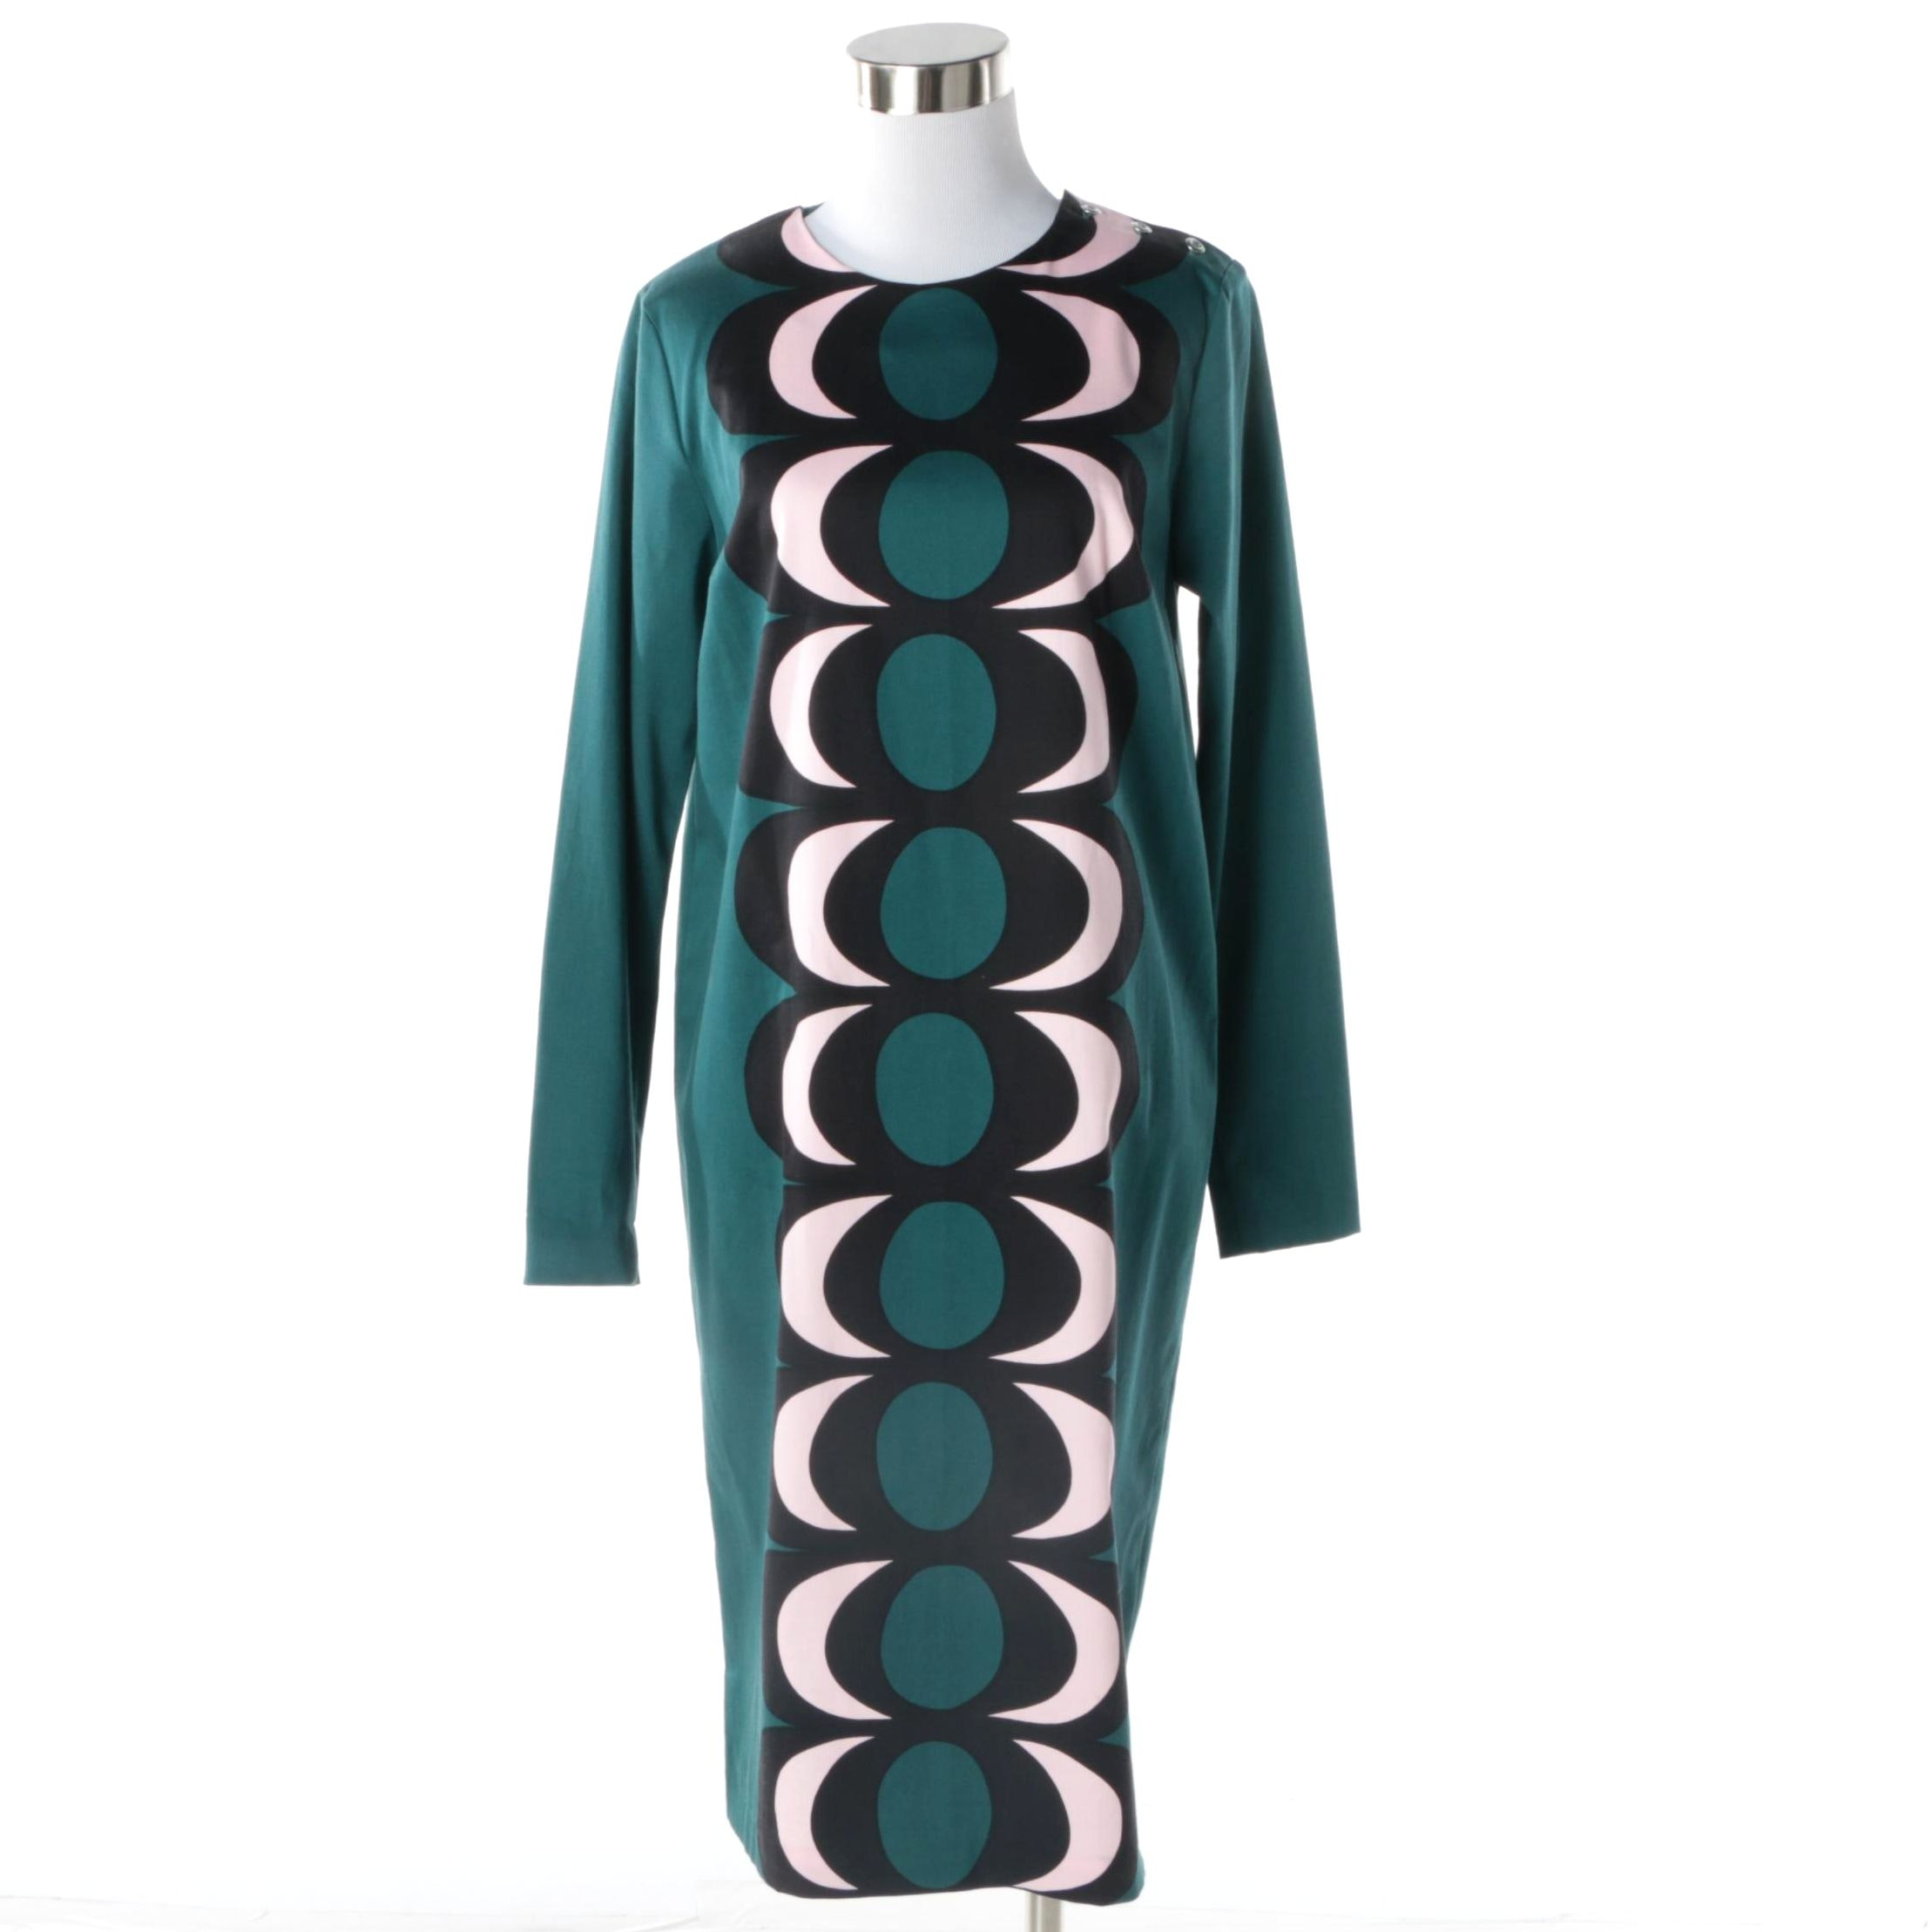 Women's Marimekko Green Bold Print Cotton Shift Dress